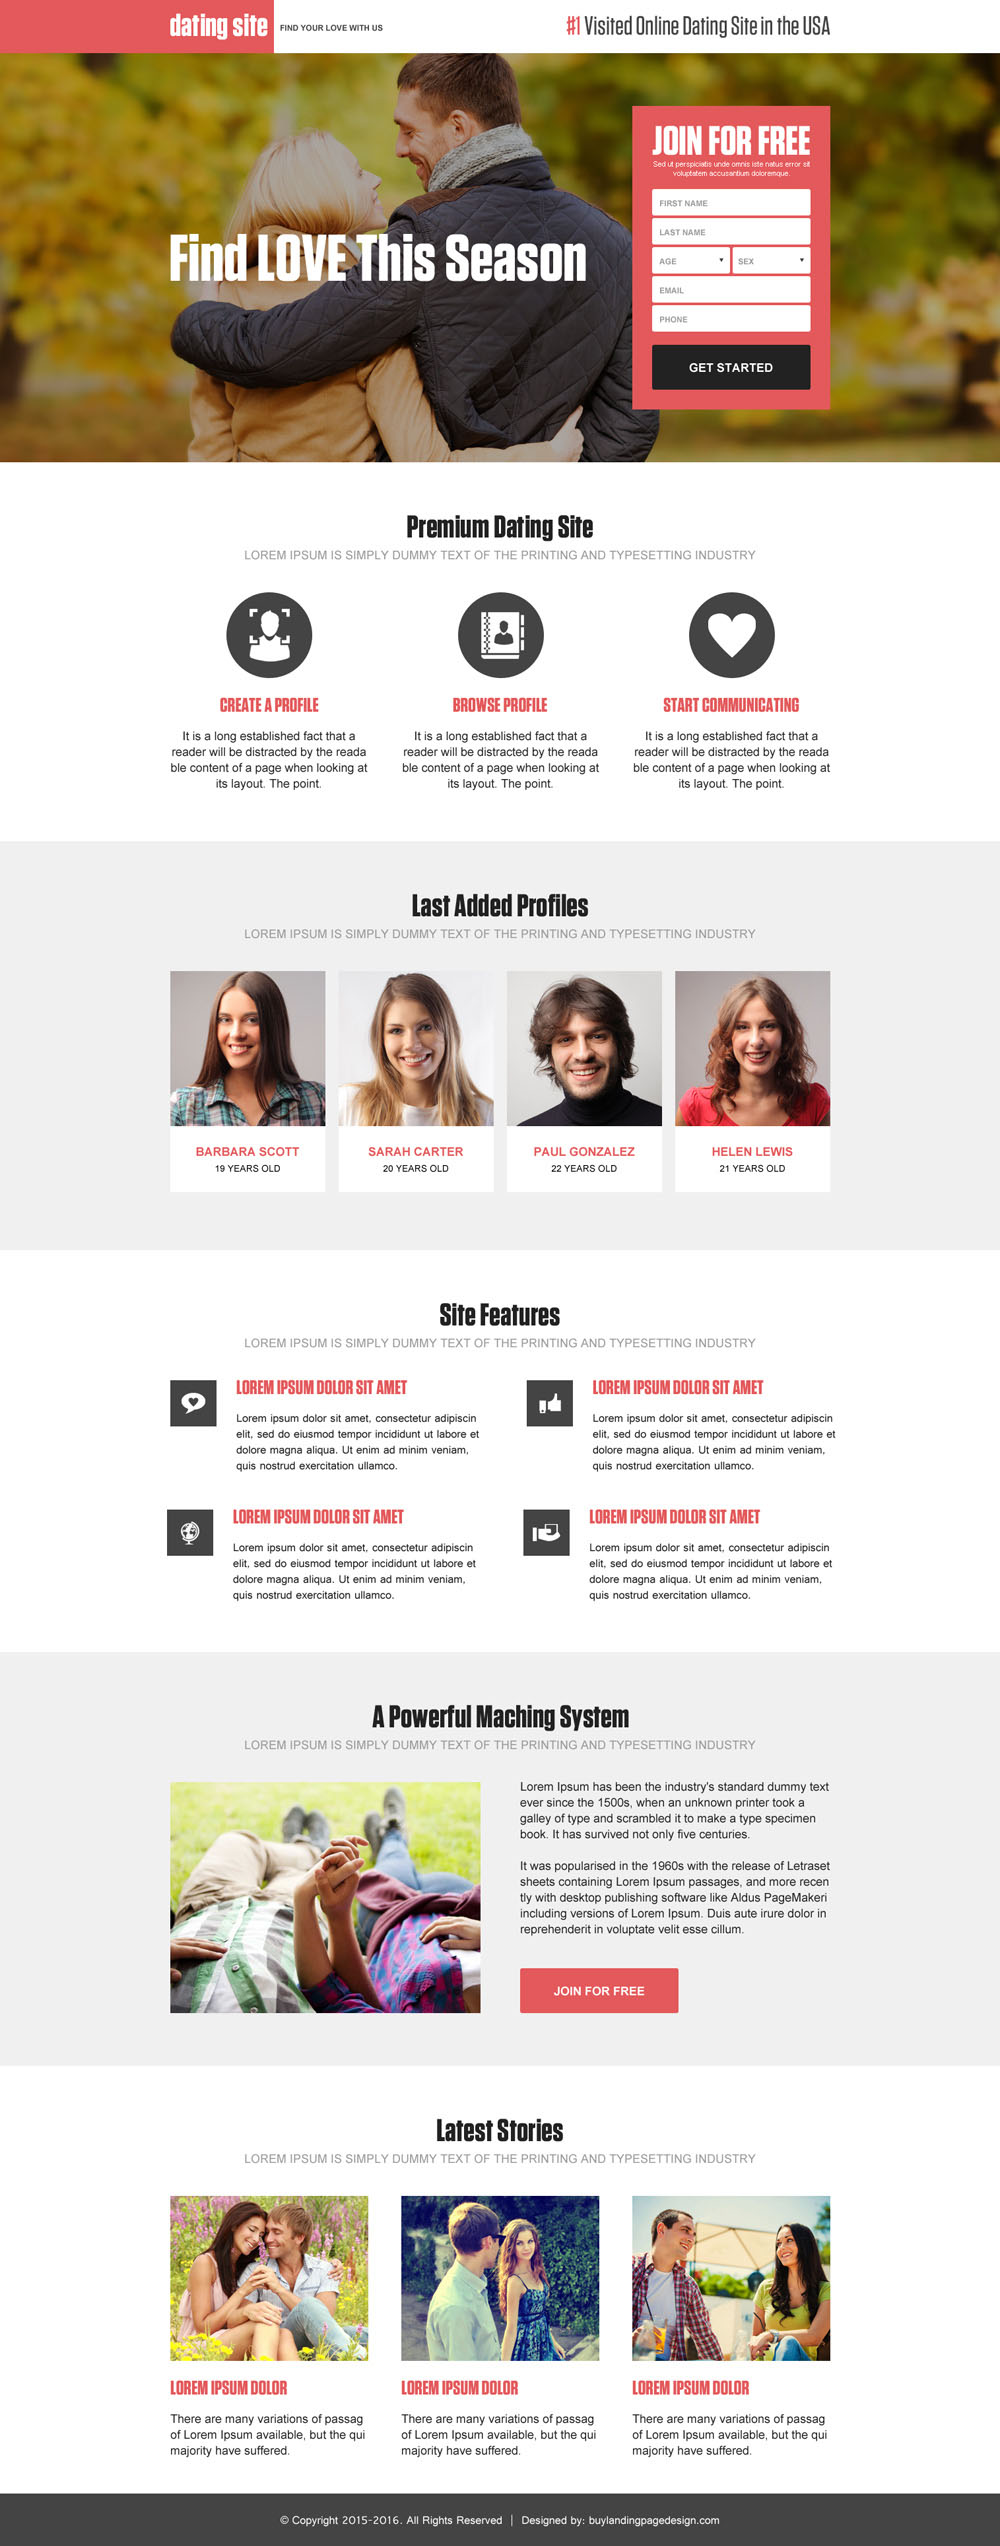 online-dating-site-in-usa-to-find-your-love-lead-generation-landing-page-design-029